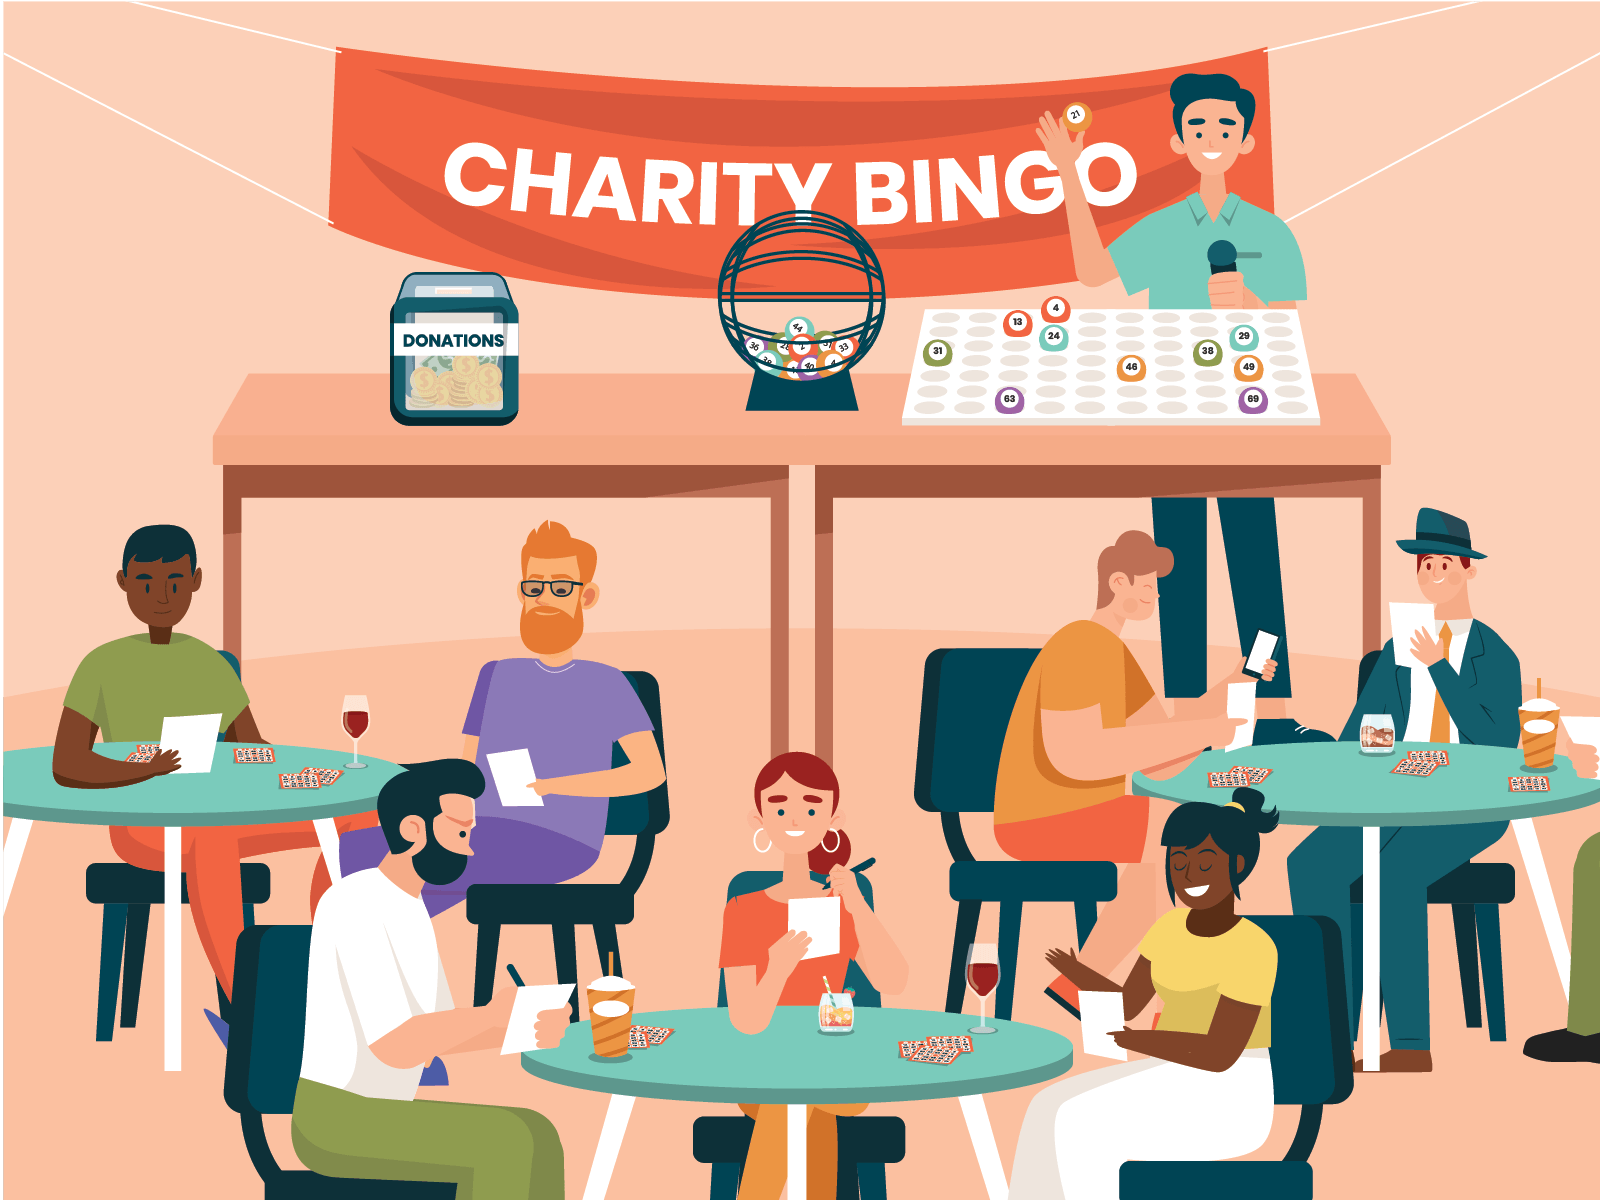 How To Legally Host A Gambling Fundraiser